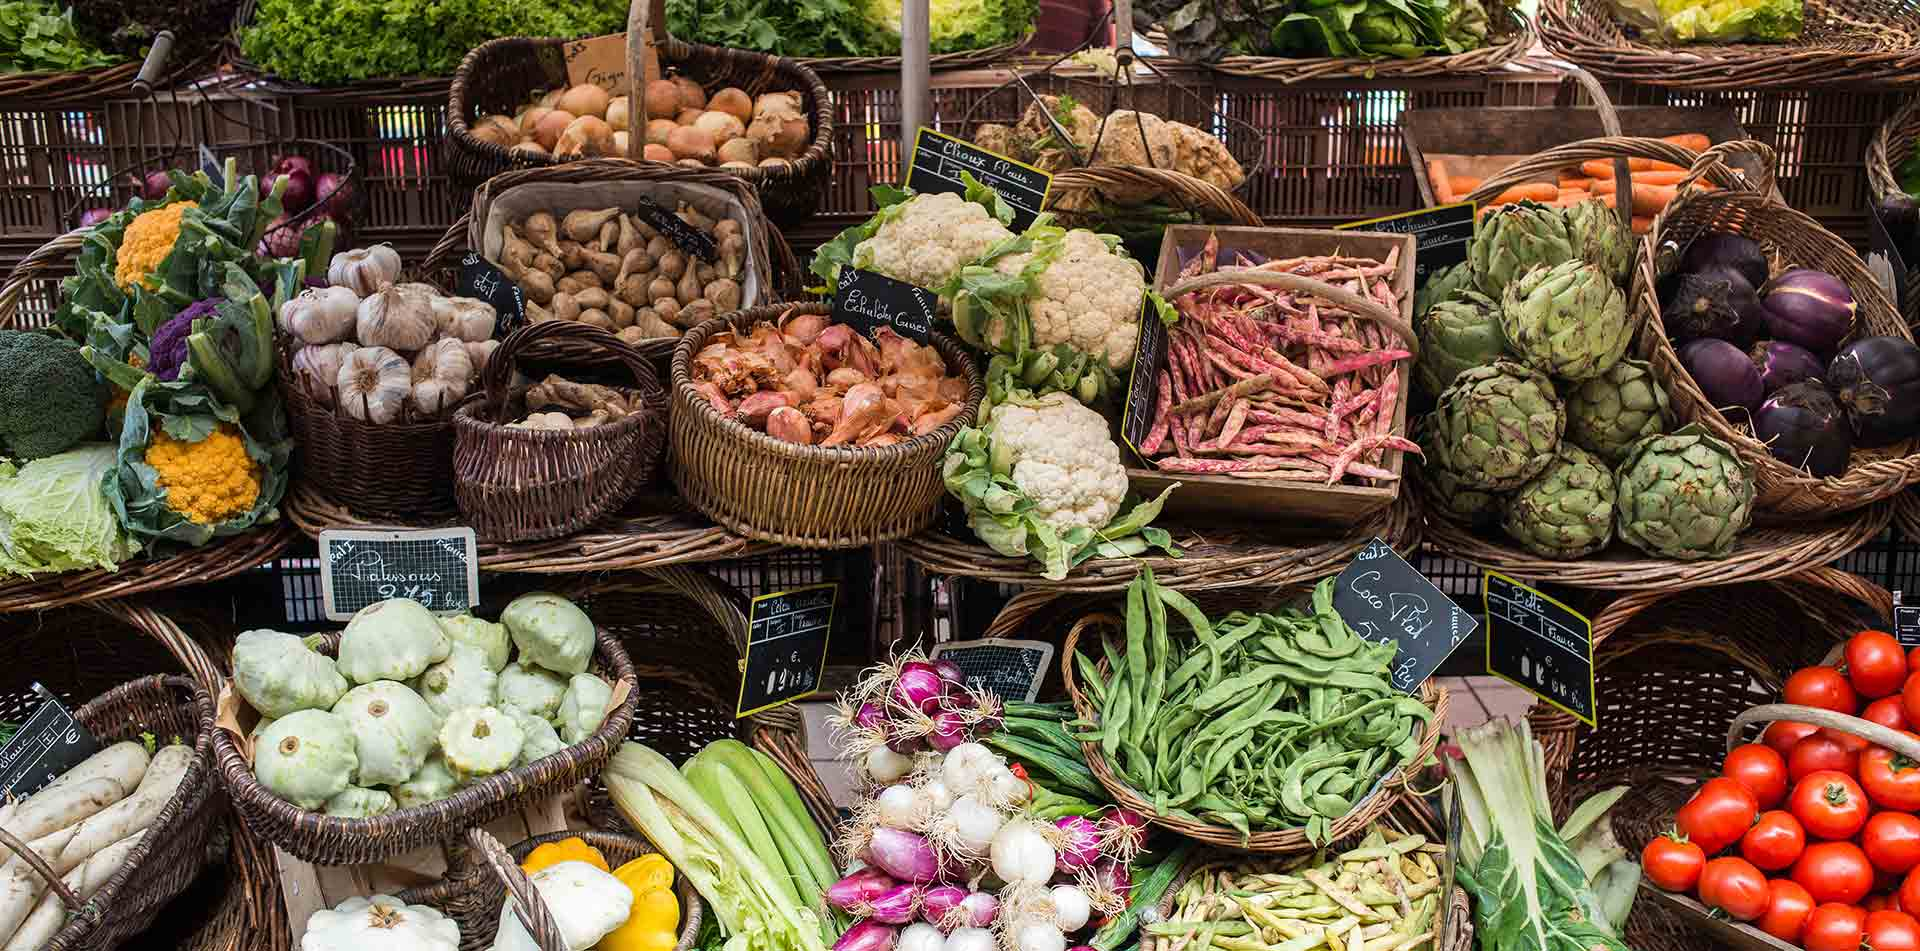 Vegetable stand, Provence, France